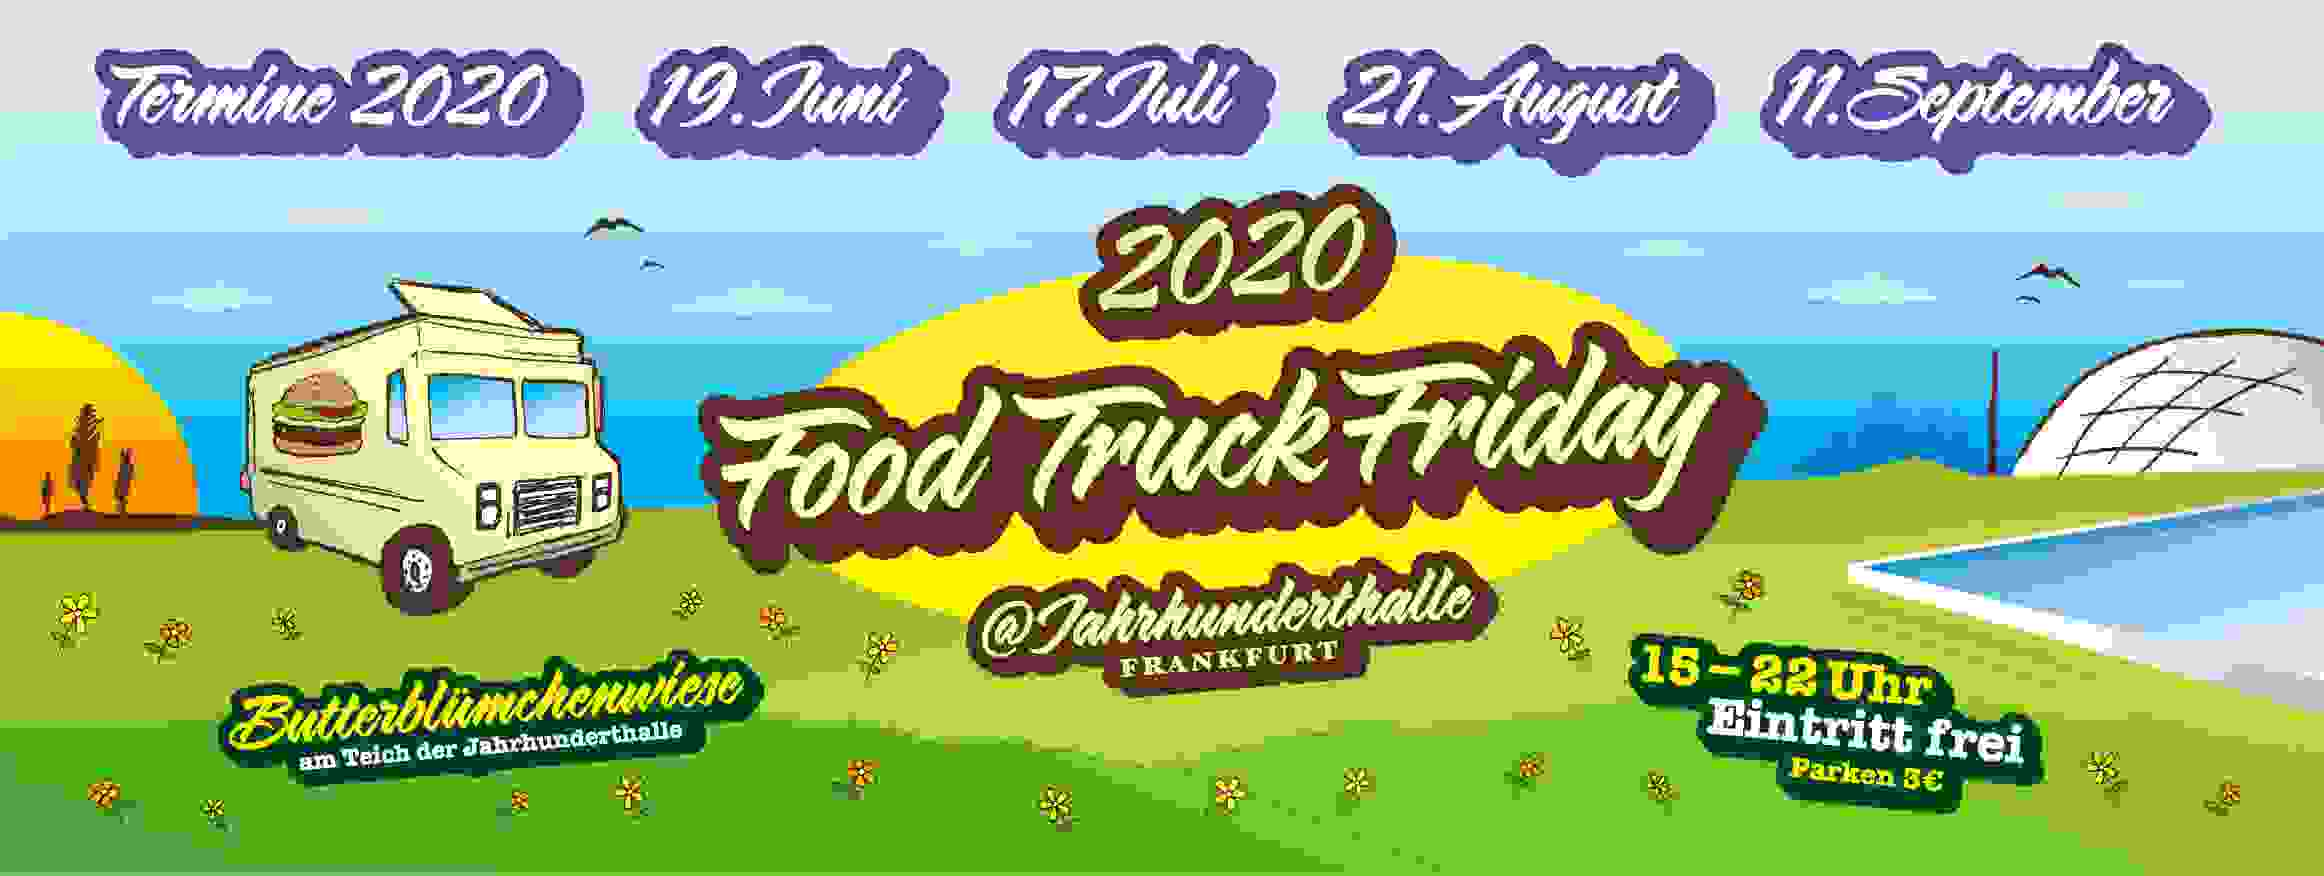 Food Truck Friday 2020